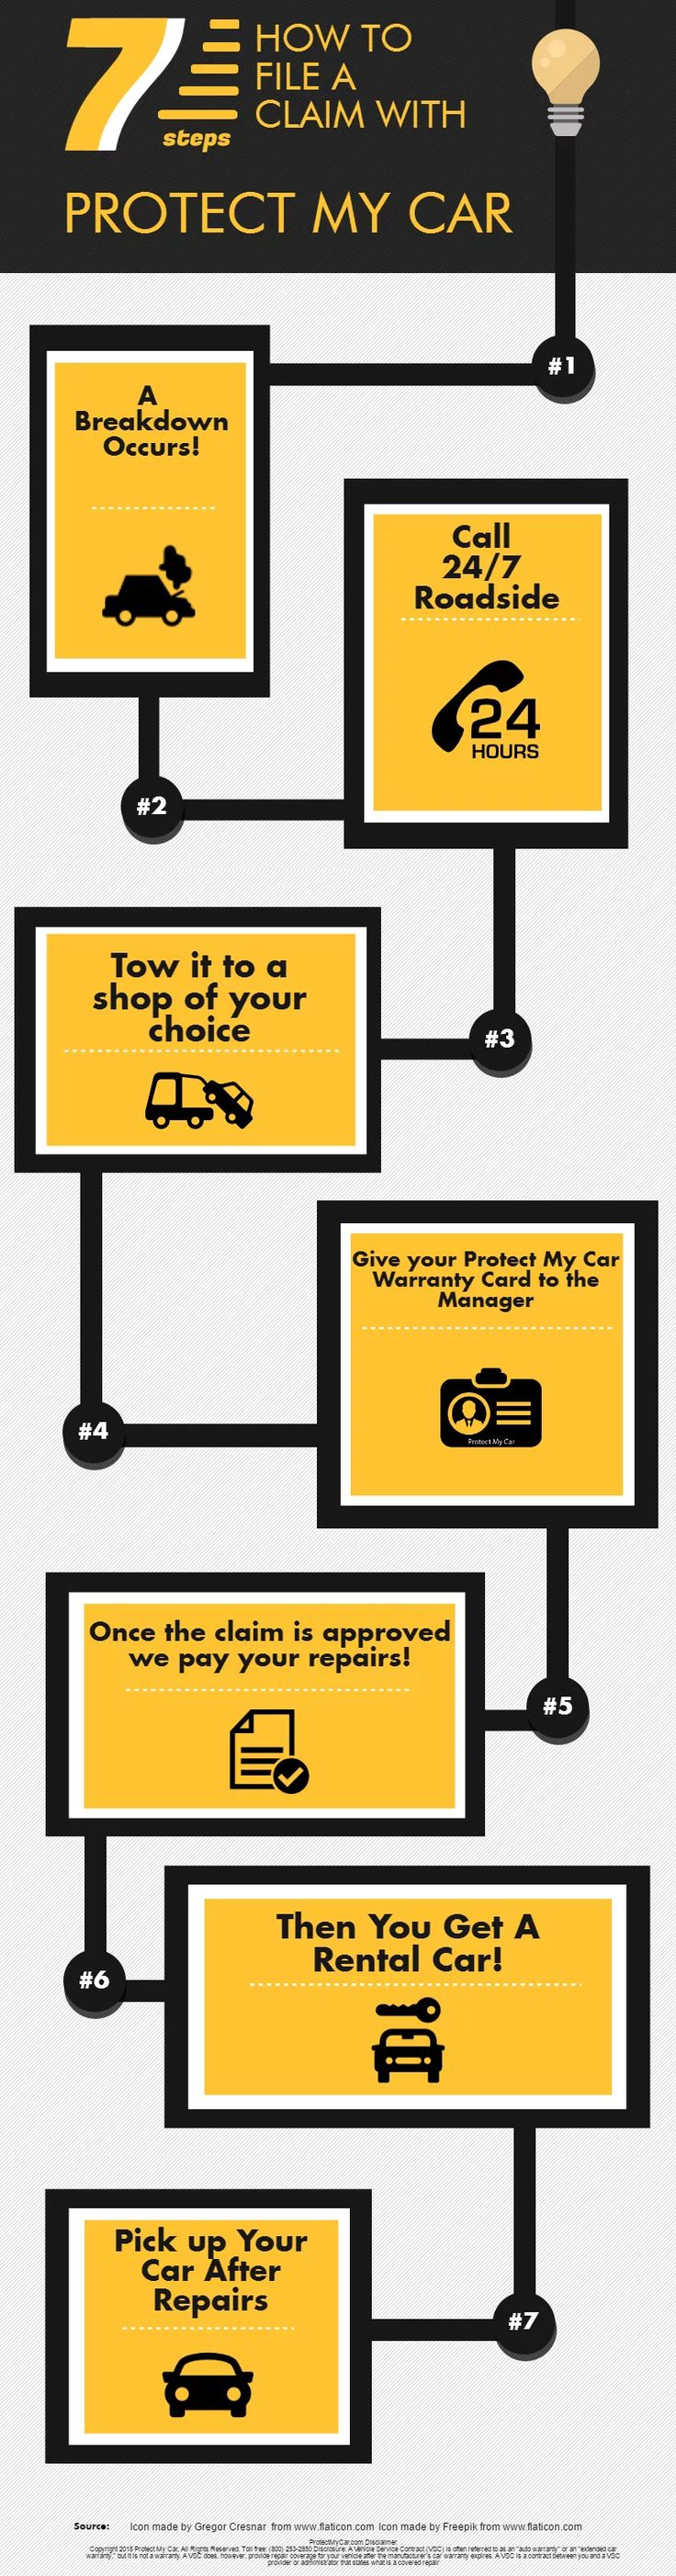 7 steps to filling a claim with protect my car